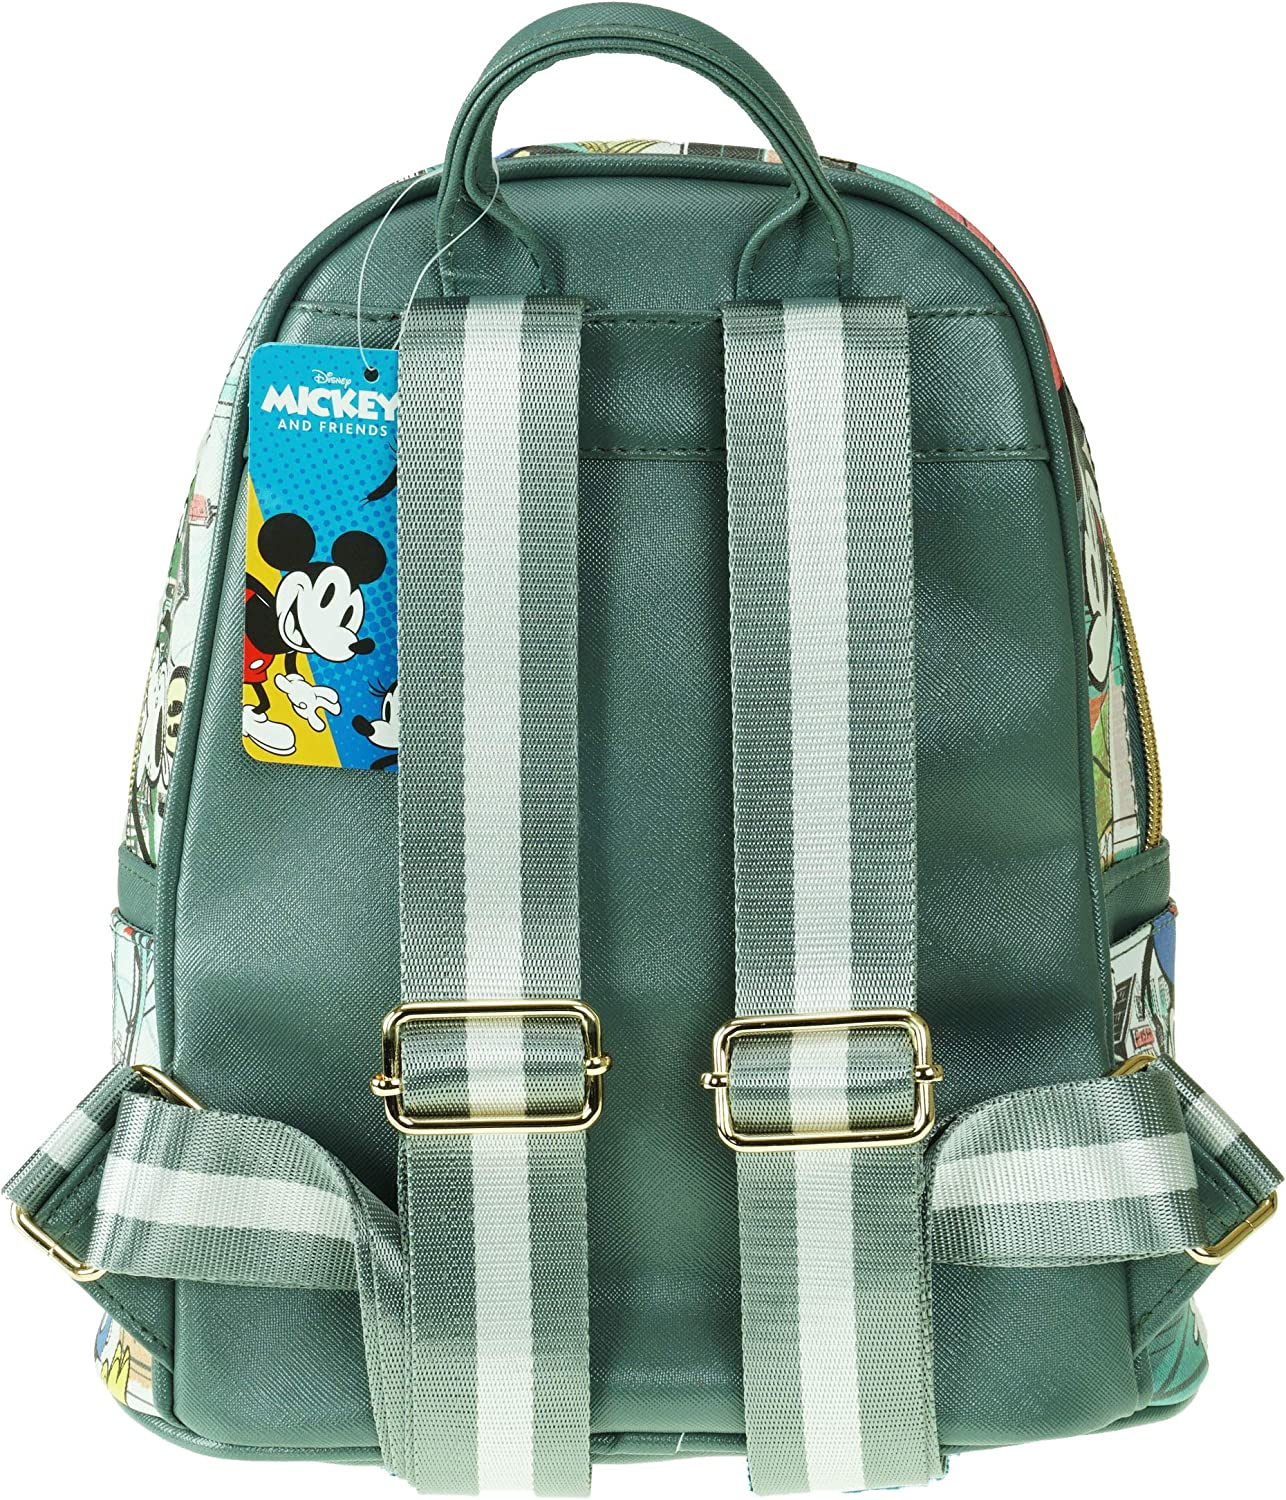 A20520 Mickey Mouse and Friends 11 Faux Leather Mini Backpack